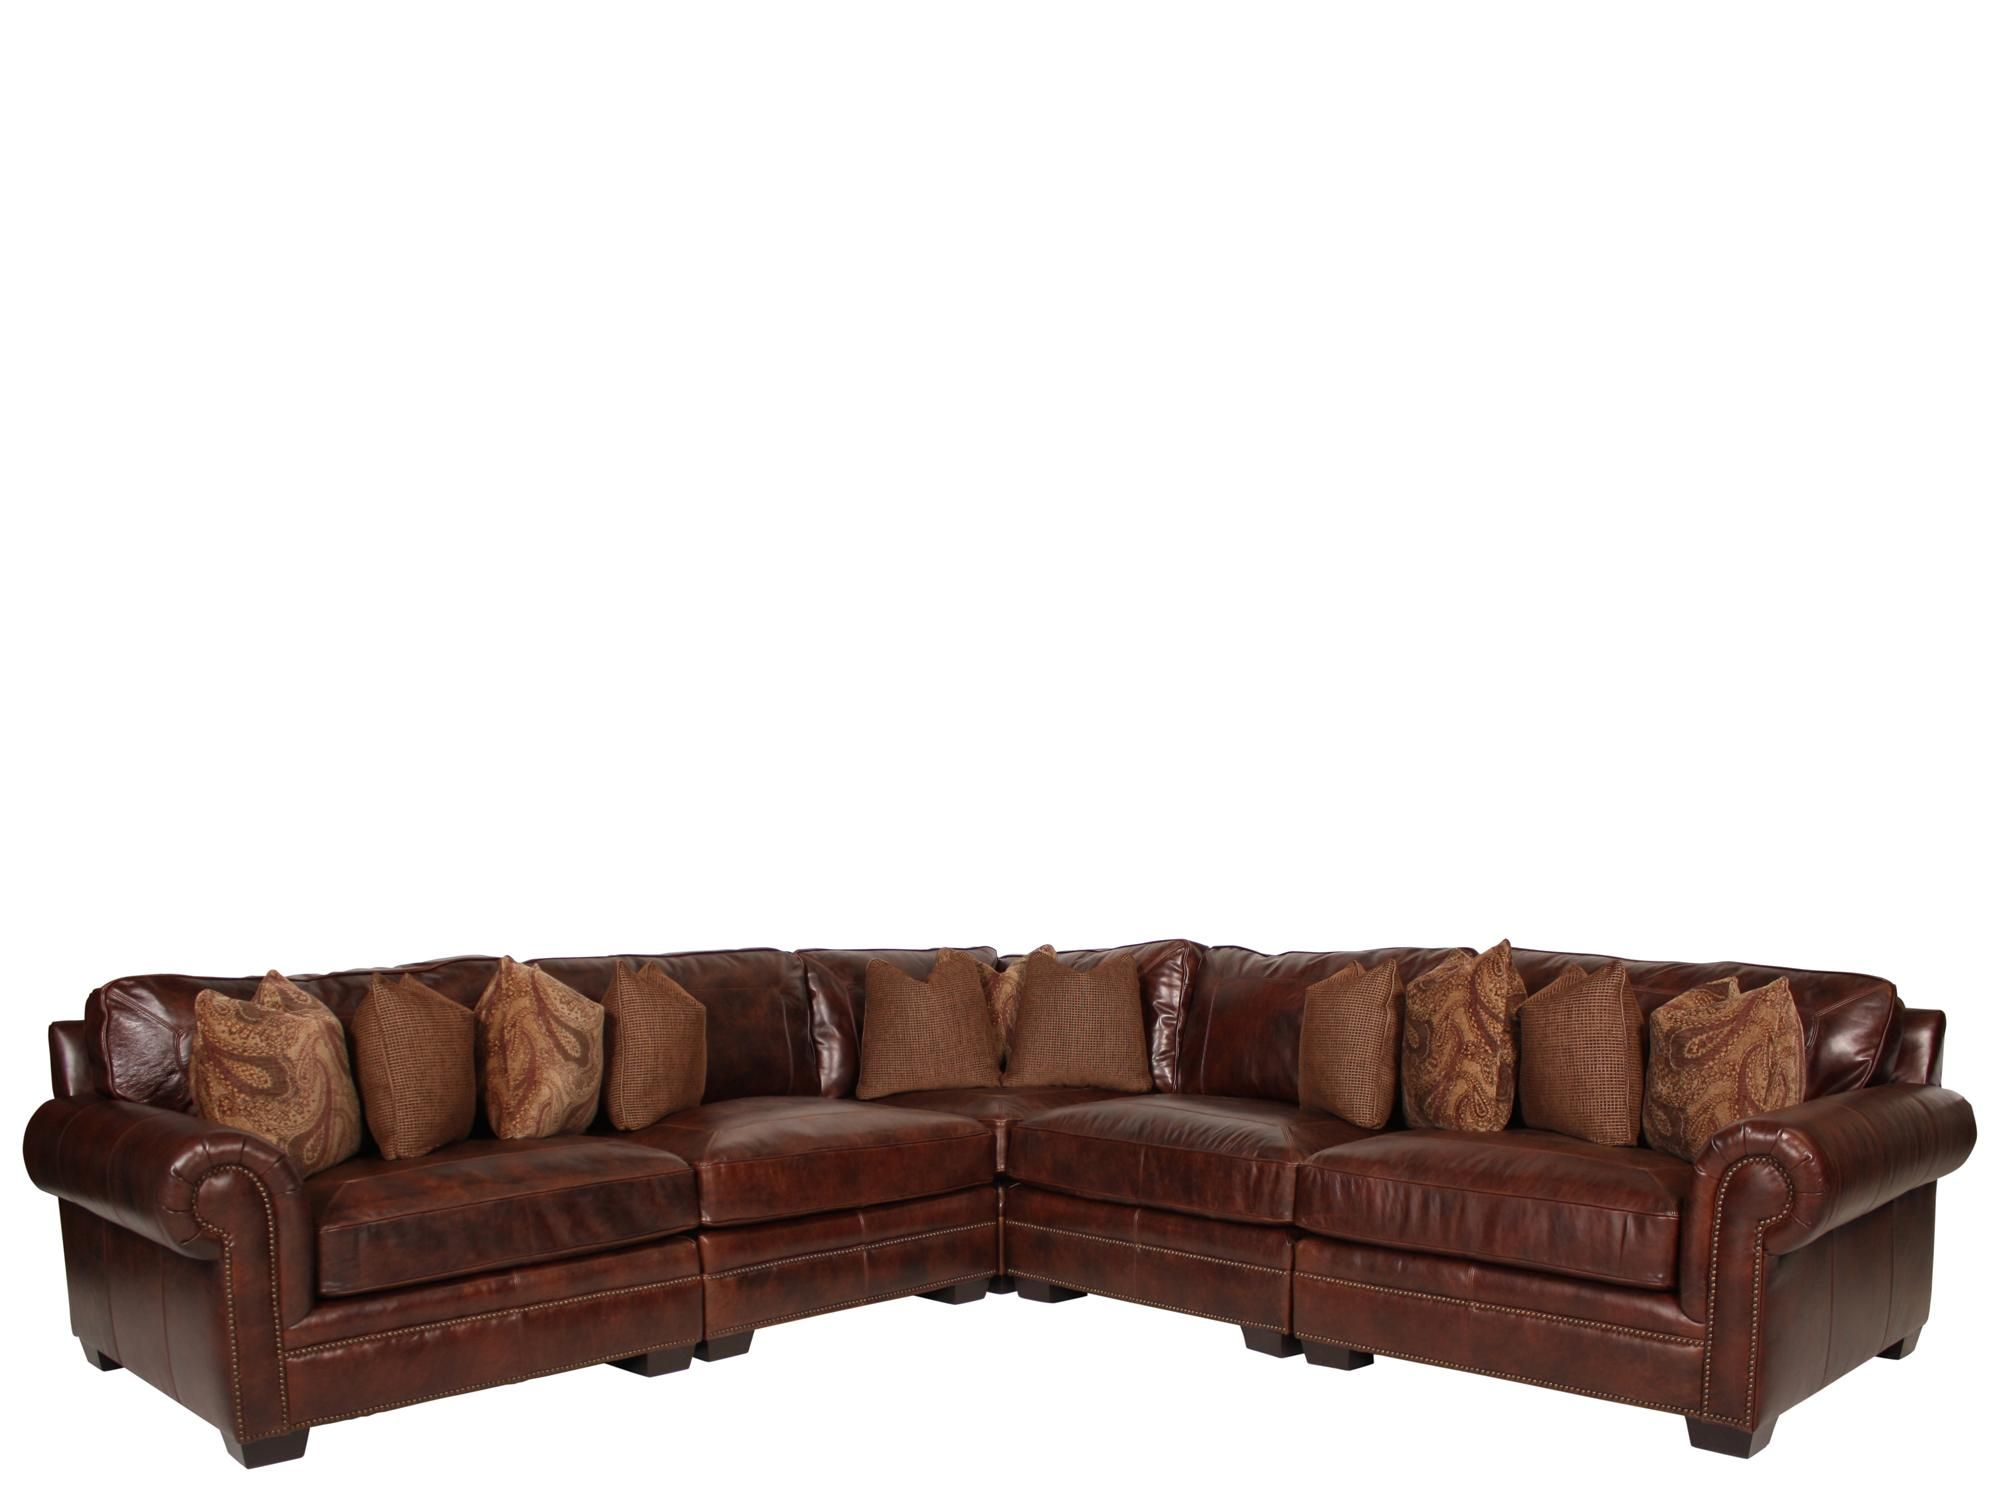 add some western flair with throw pillows and a throw Leather